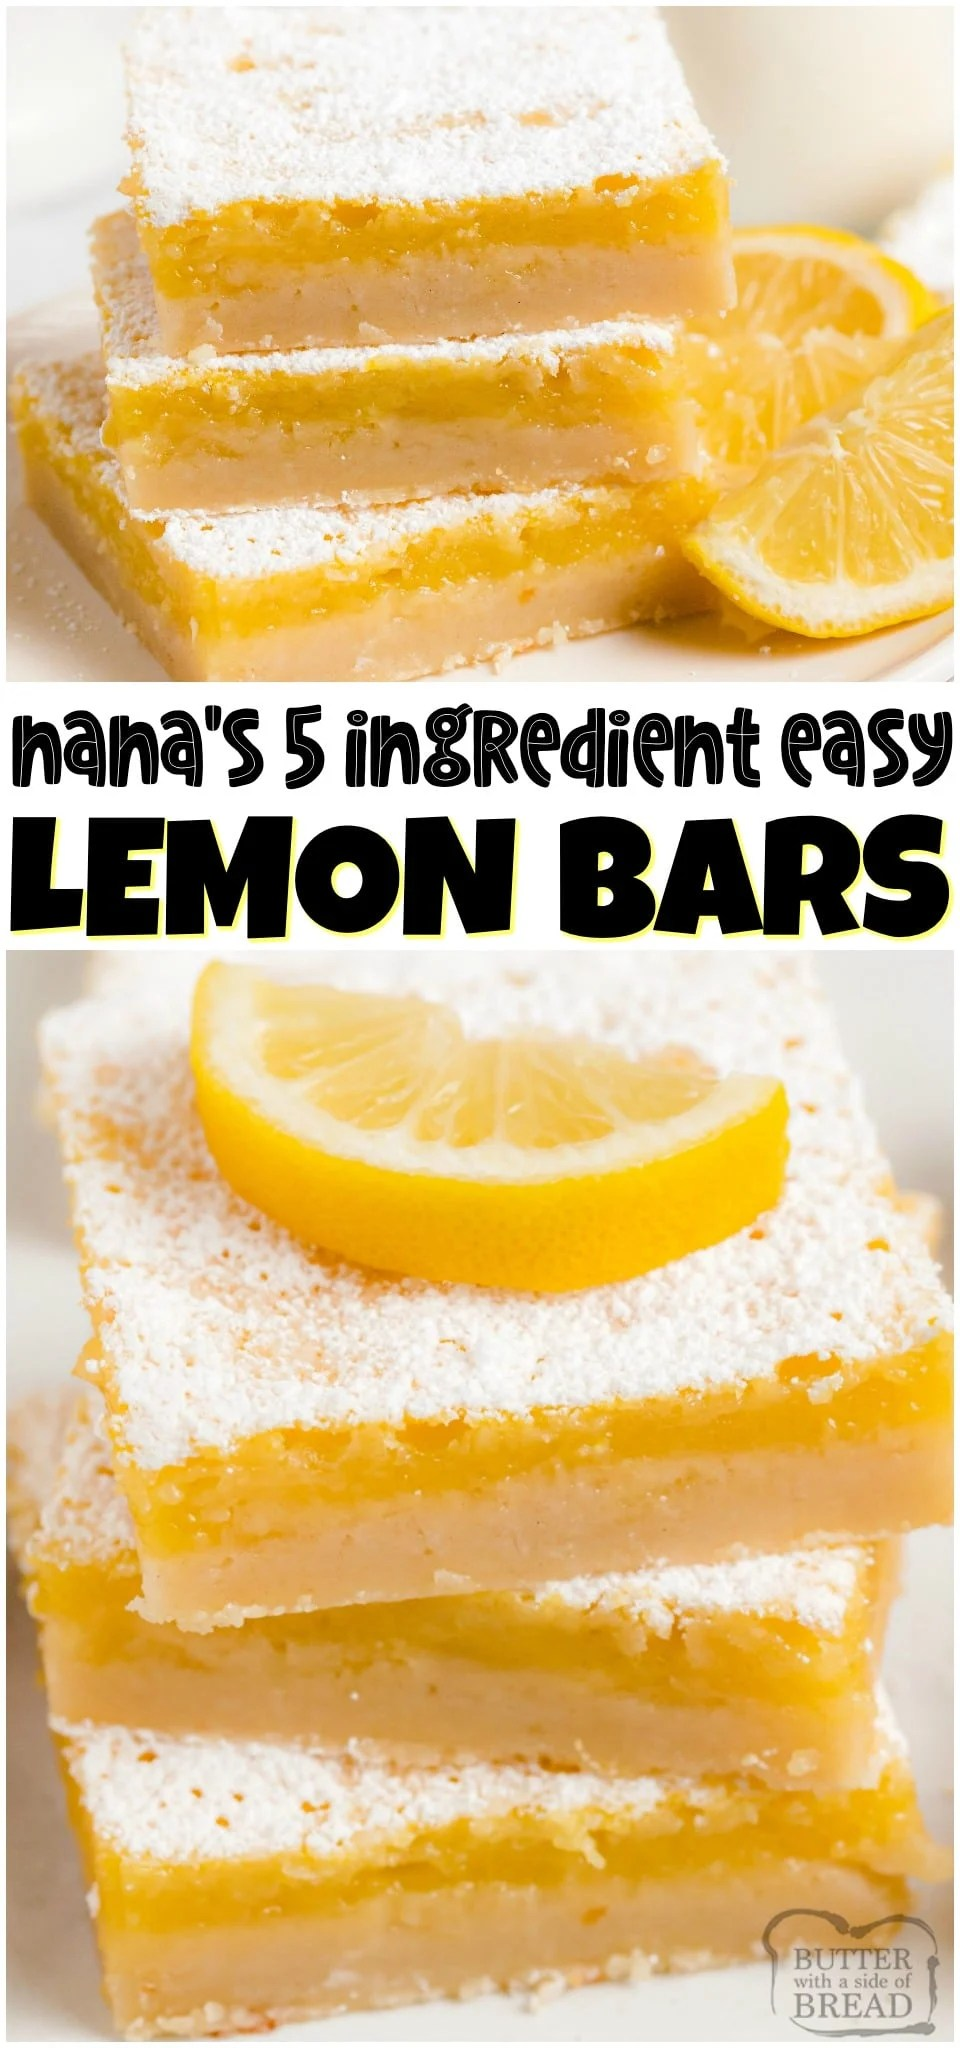 Easy Lemon Bars made with just 5 ingredients! Homemade Lemon Bars recipe made with butter, sugar, eggs and lemon juice for a tasty, tangy lemon dessert!